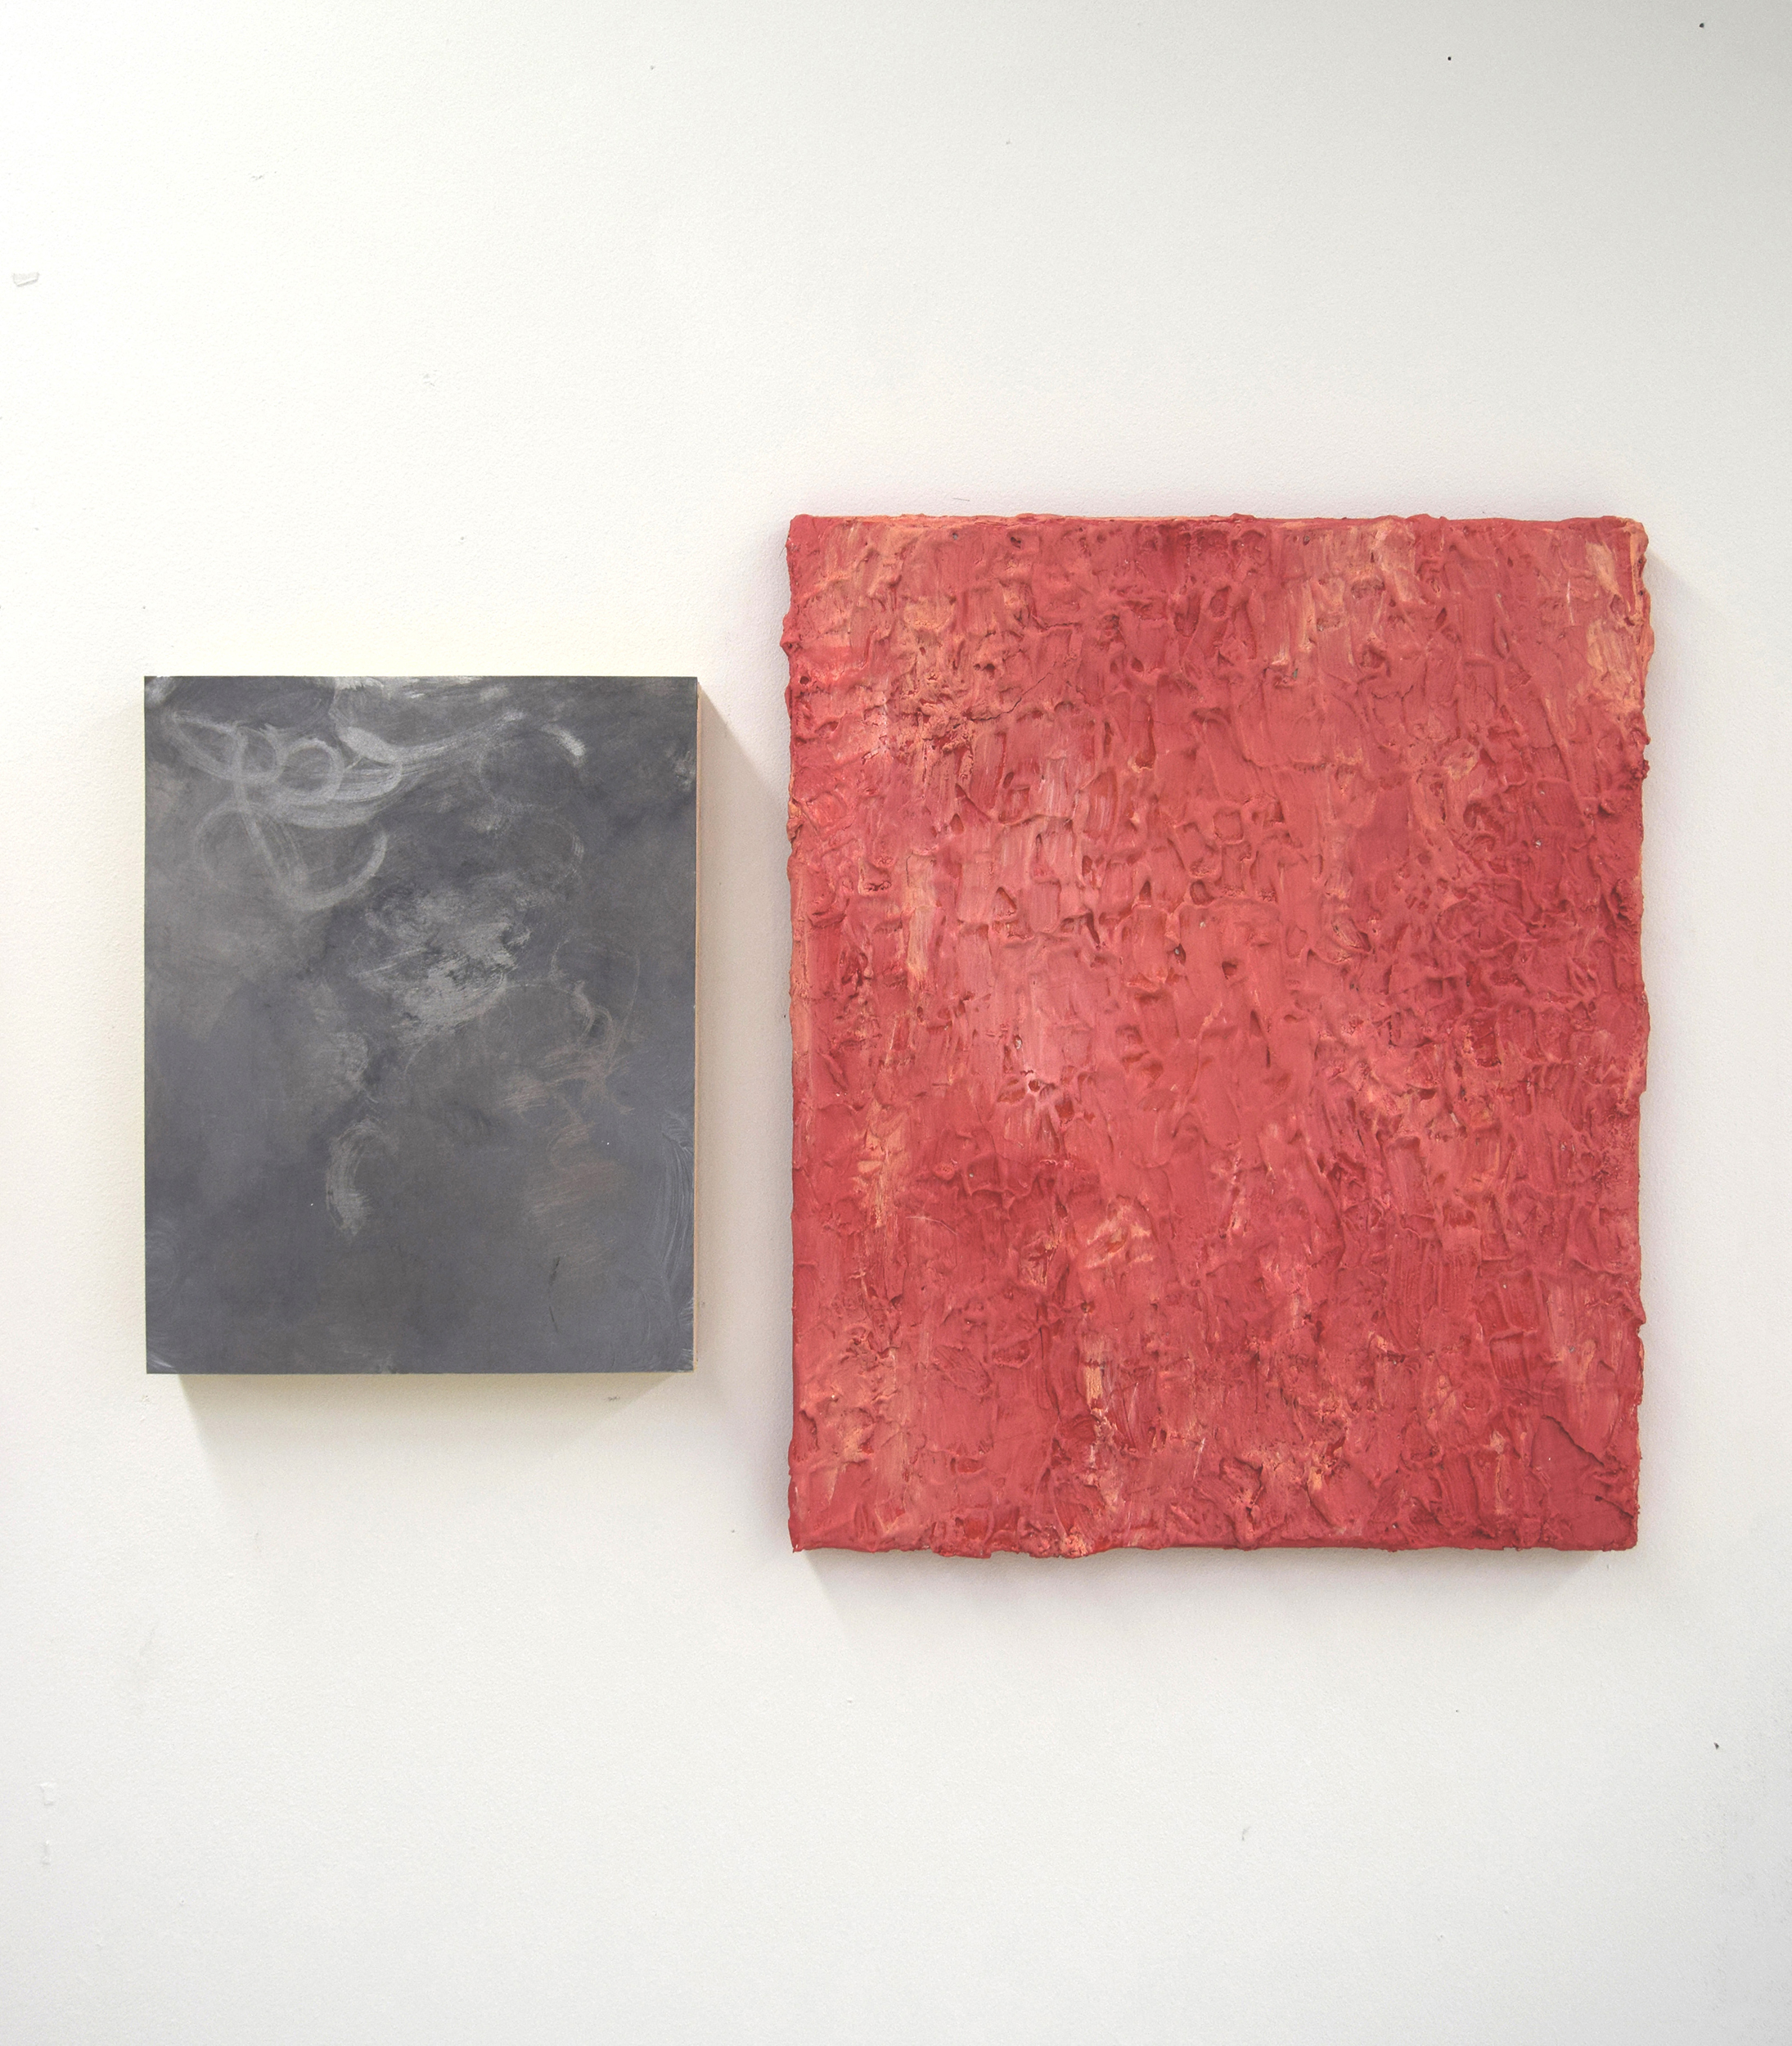 Two paintings, one metal and one is a paint textural one